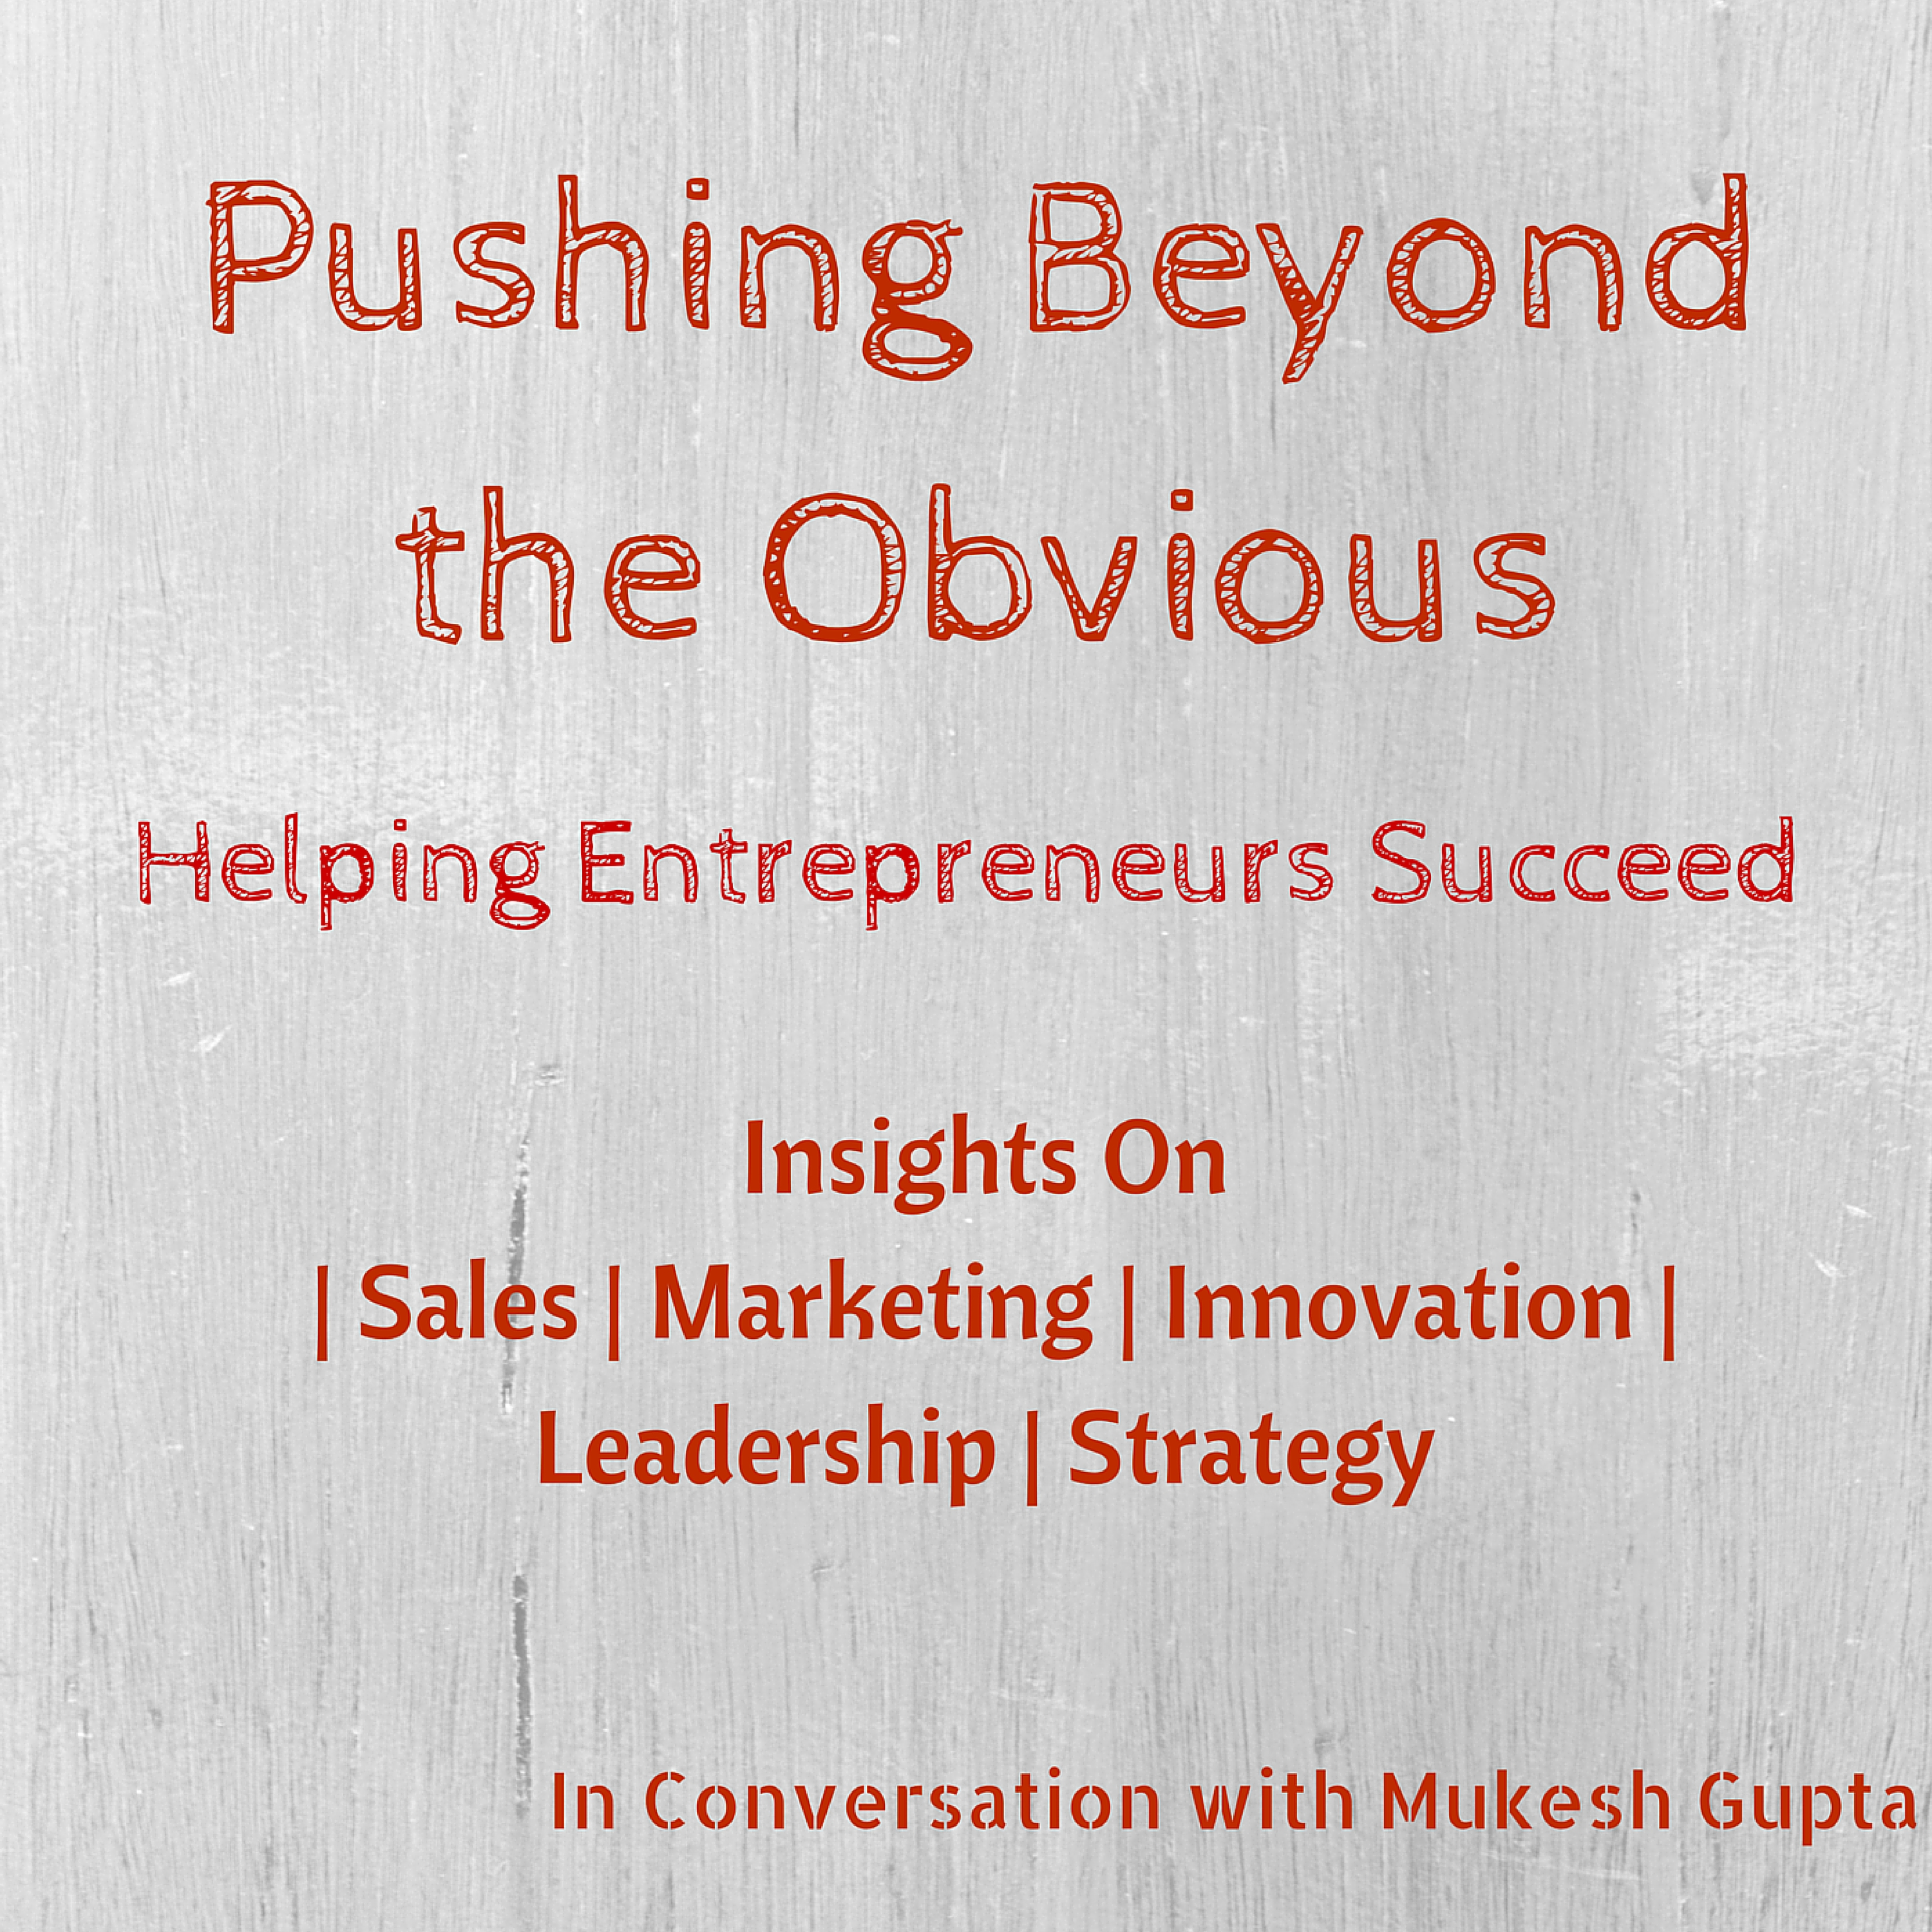 Pushing Beyond the Obvious - Helping Entrepreneurs Succeed